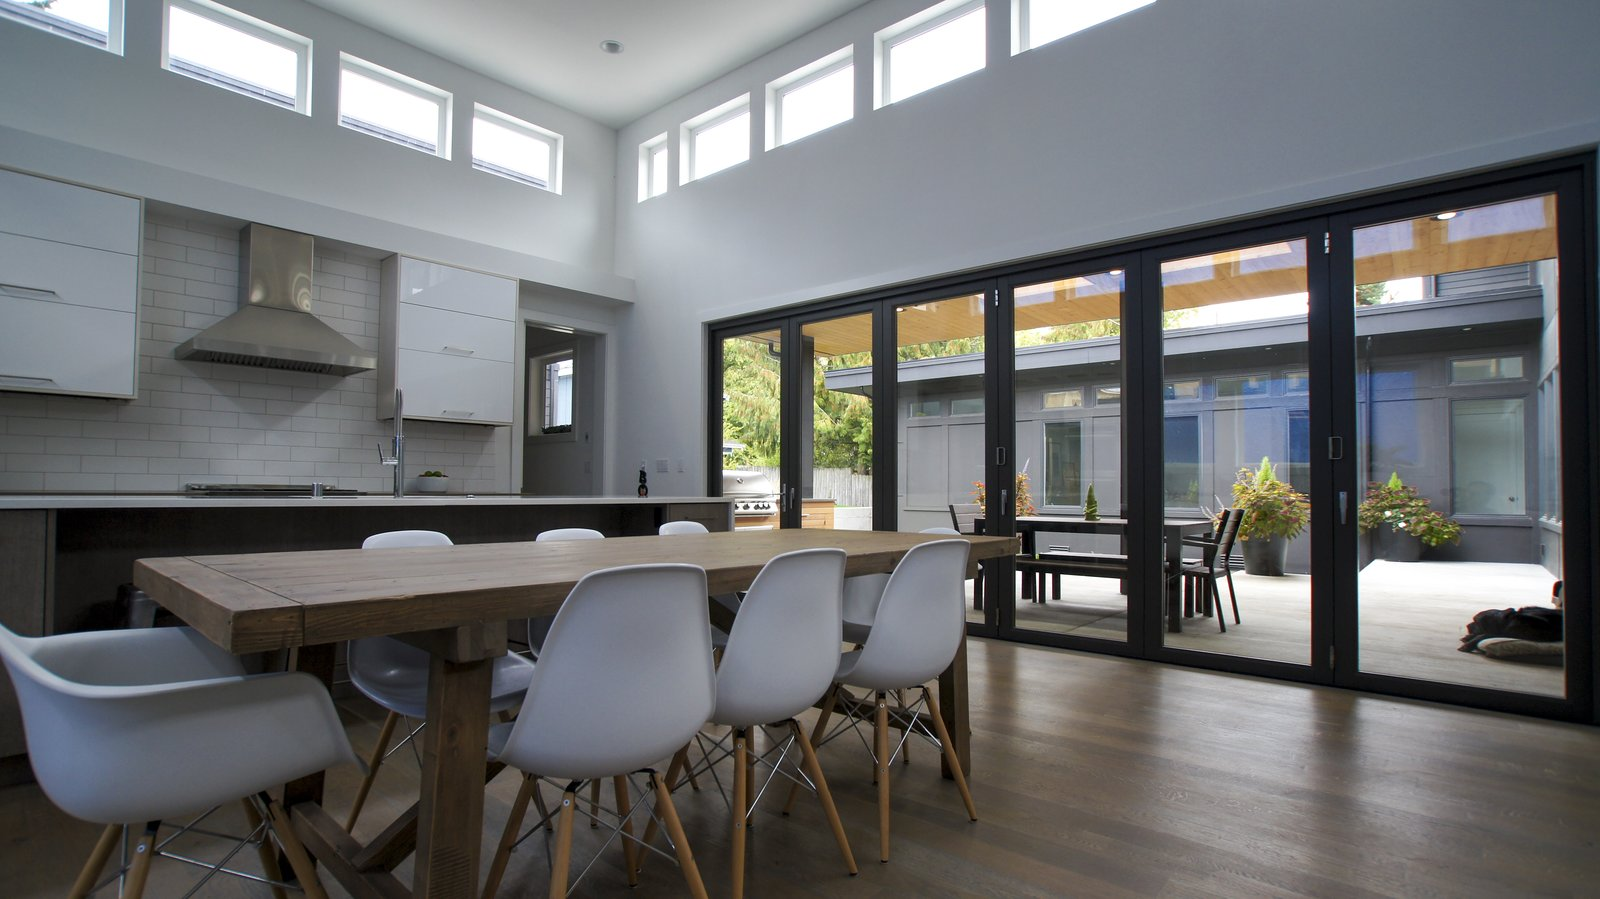 Natural light permeates the kitchen through the many windows and glass doors, brightening the room that often becomes the center of all activity for this family.